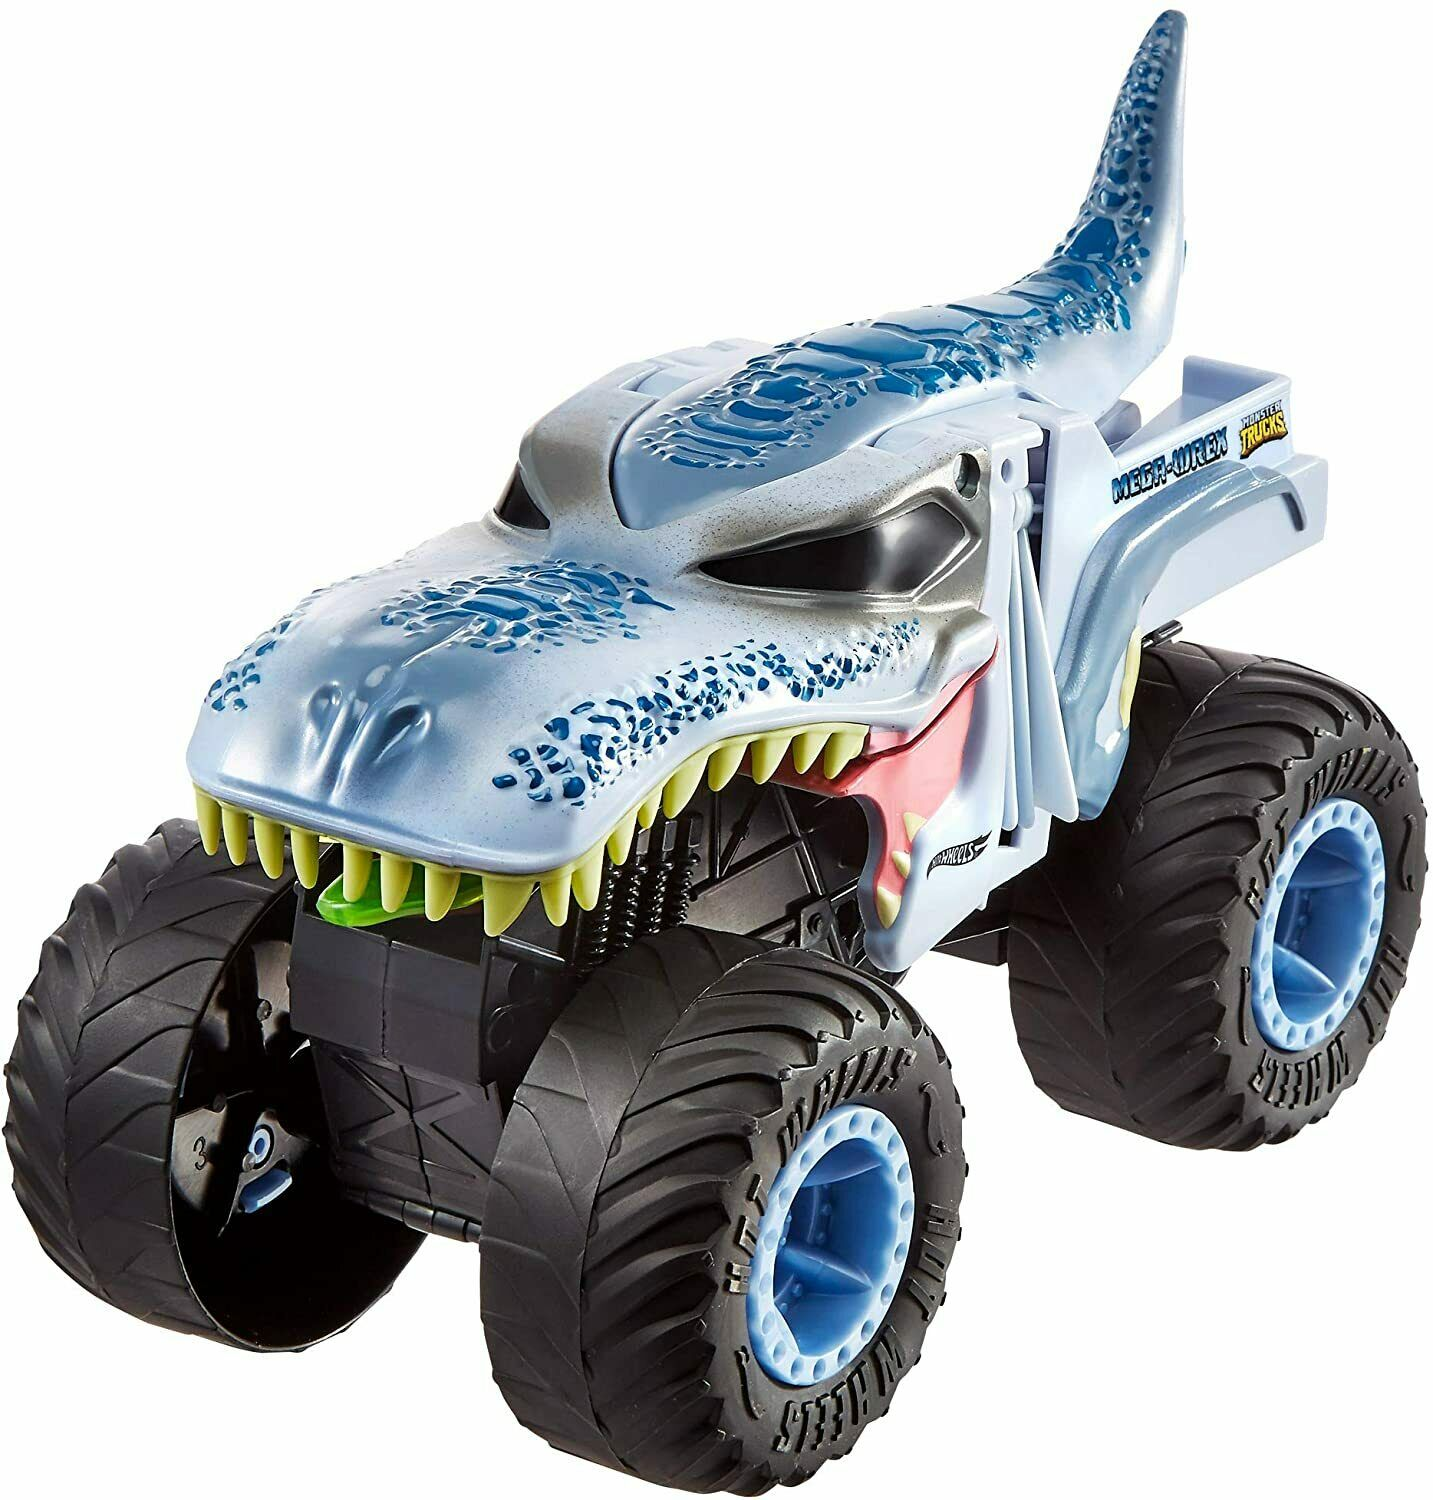 Hot Wheels Monster Trucks Double Troubles Mega-Wrex Vehicle  –  Blue 1:24 Scale Cars, Trucks & Vans